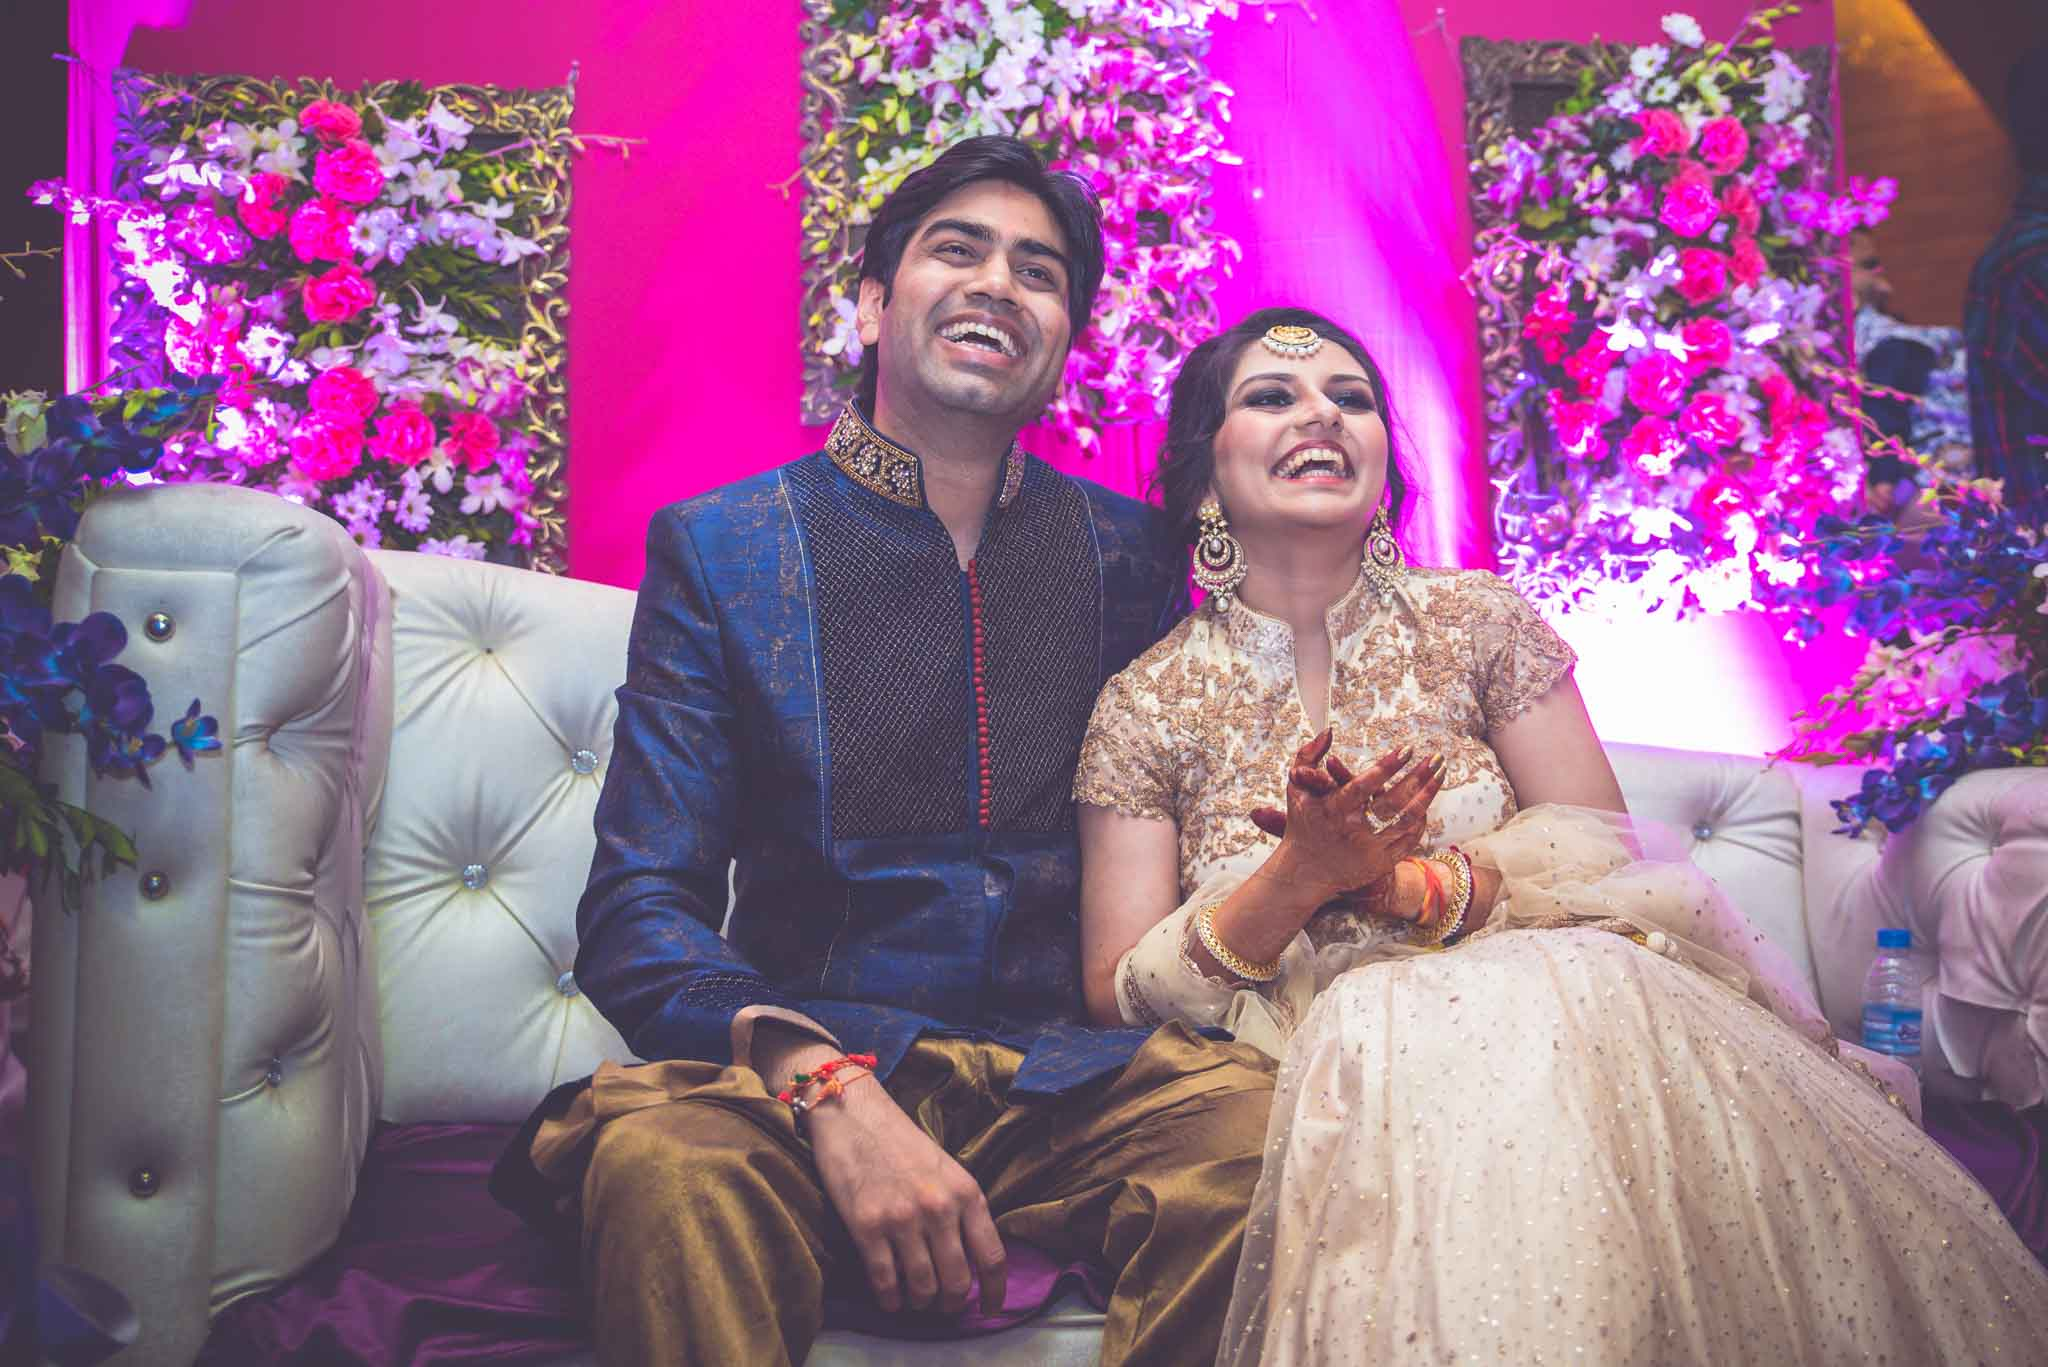 Candid-Wedding-Photography-Nagpur-Destination-36